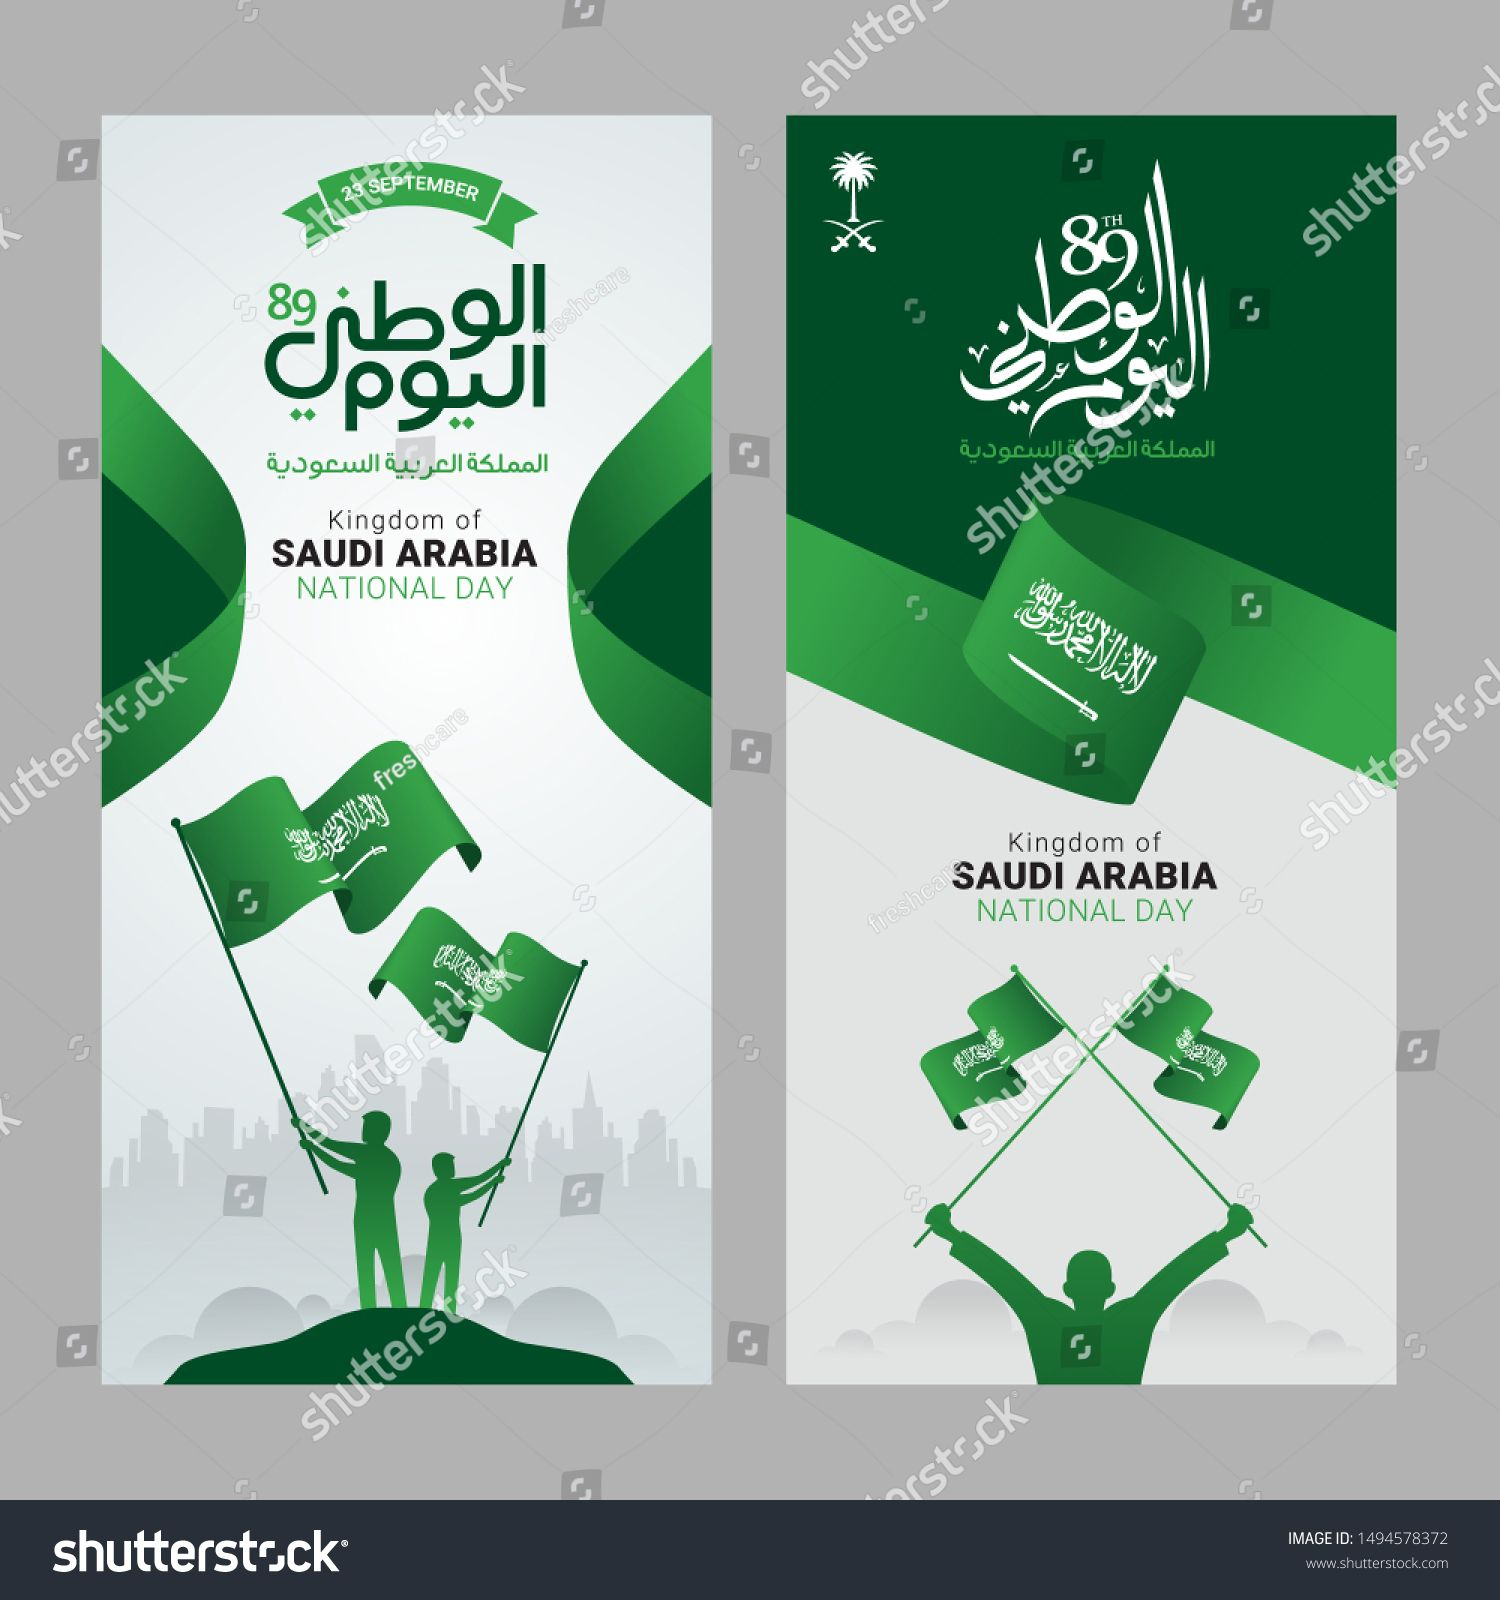 Kingdom Of Saudi Arabia National Day In 23 September Greeting Card Arabic Text Translation Kingdom Of Saudi Arabia N Spo Happy National Day National Day Day